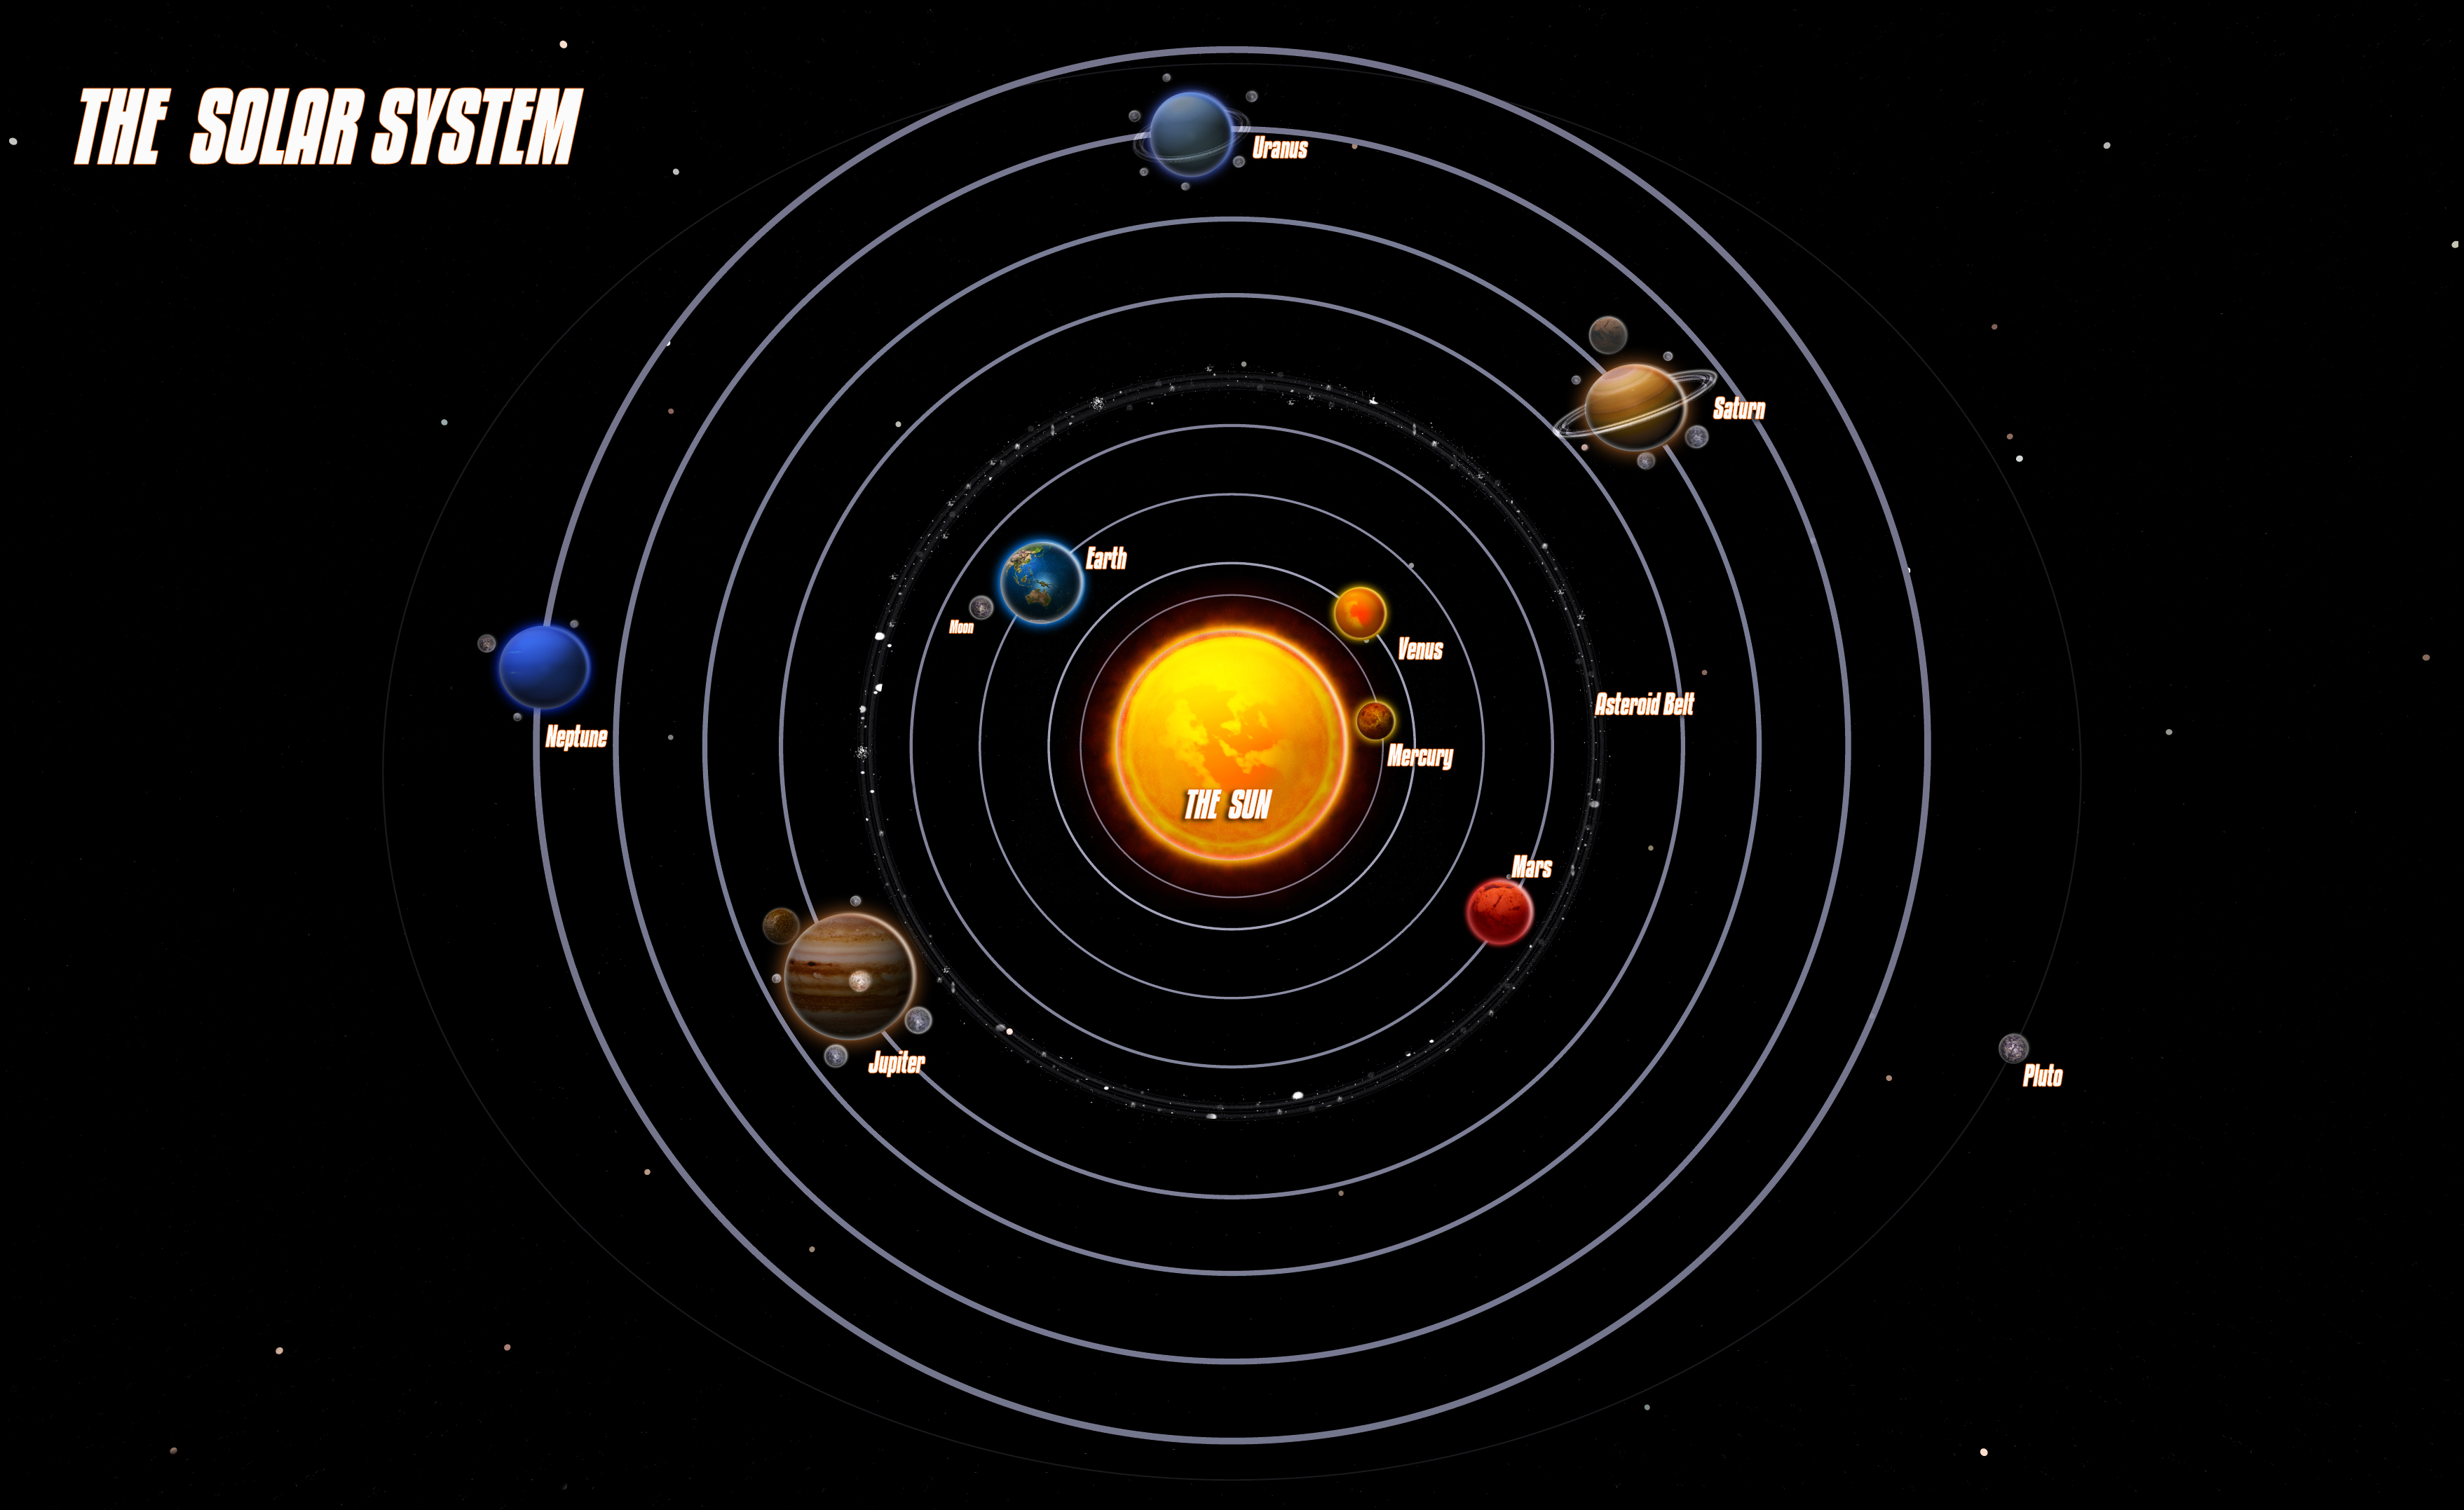 pictures of the solar system in order from the sun - photo #34